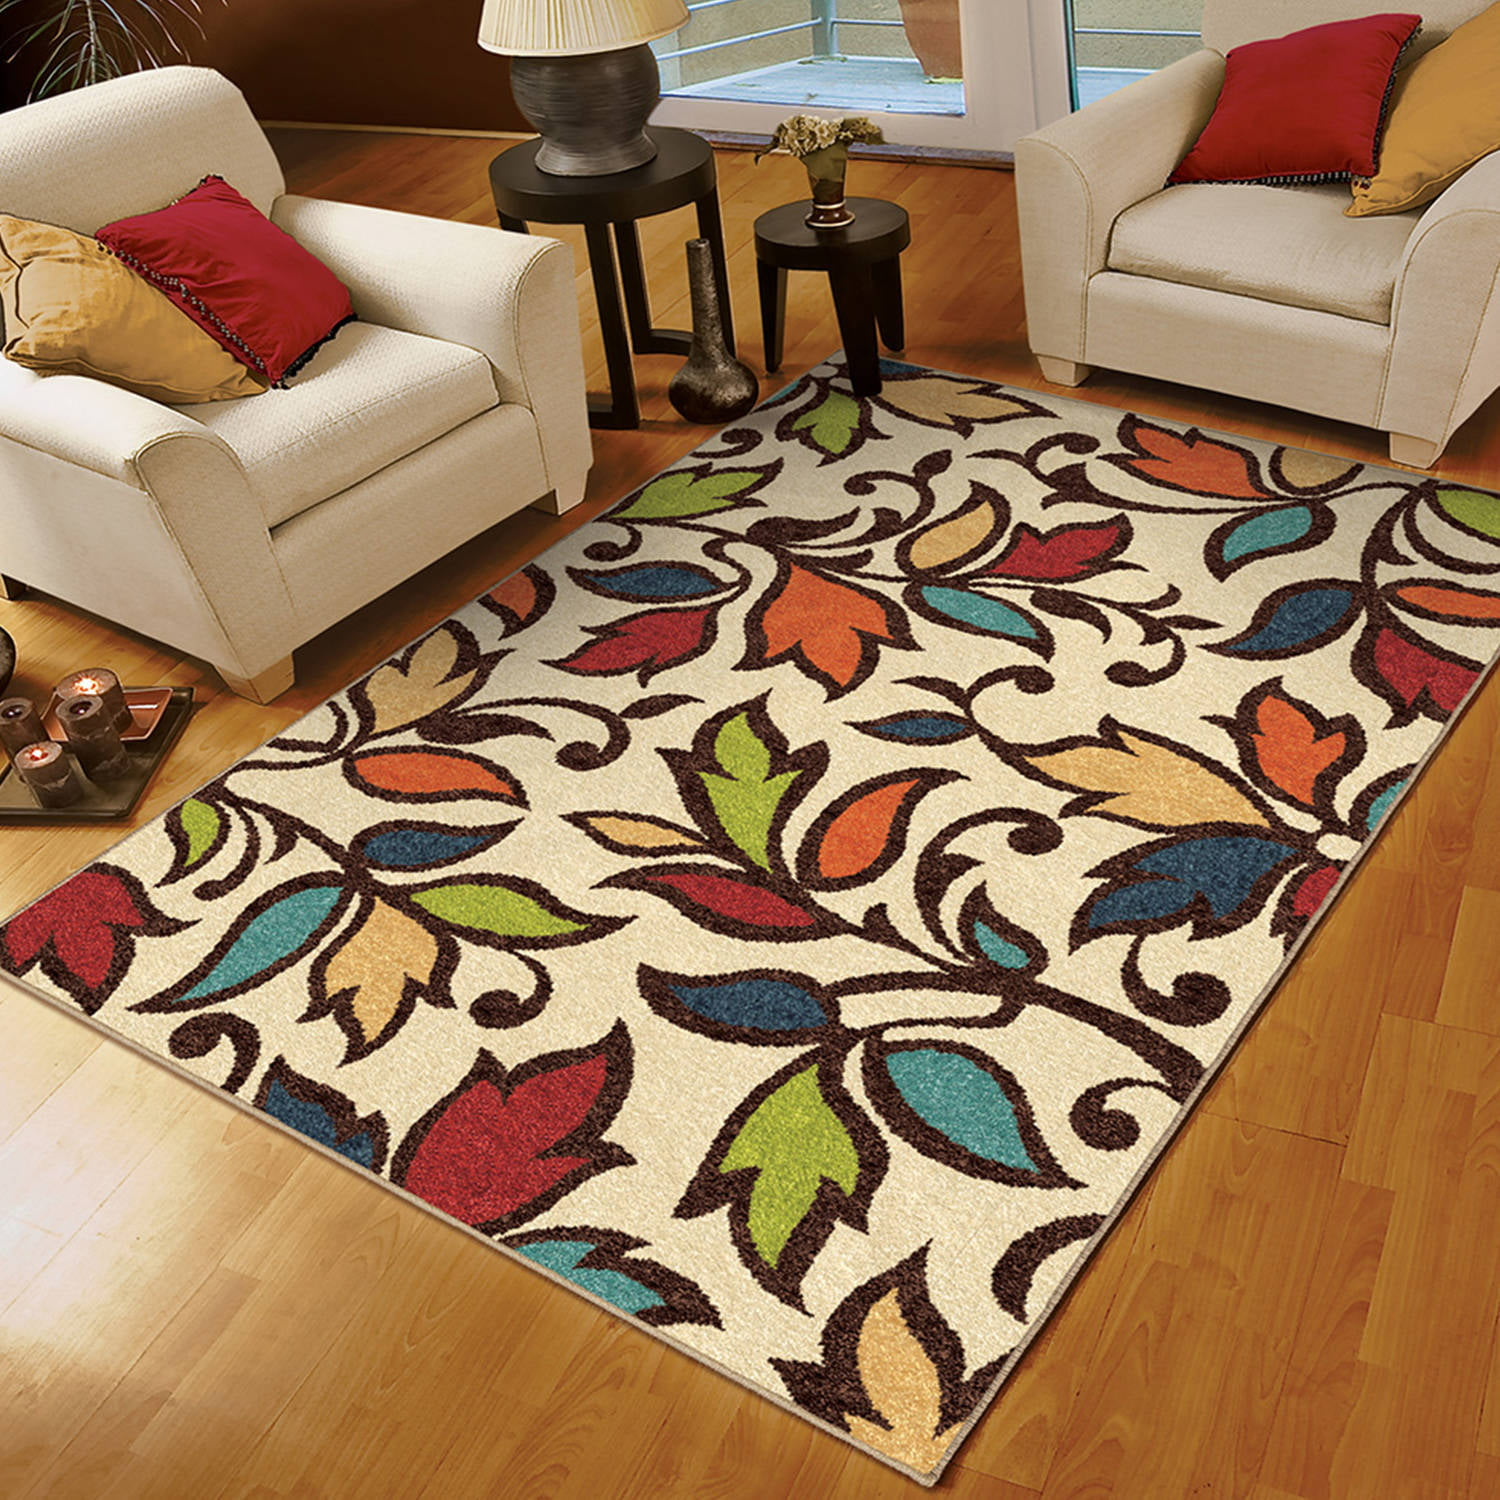 Great Orian Rugs Indoor/Outdoor Dicarna Cream Leaves Area Rug   Walmart.com